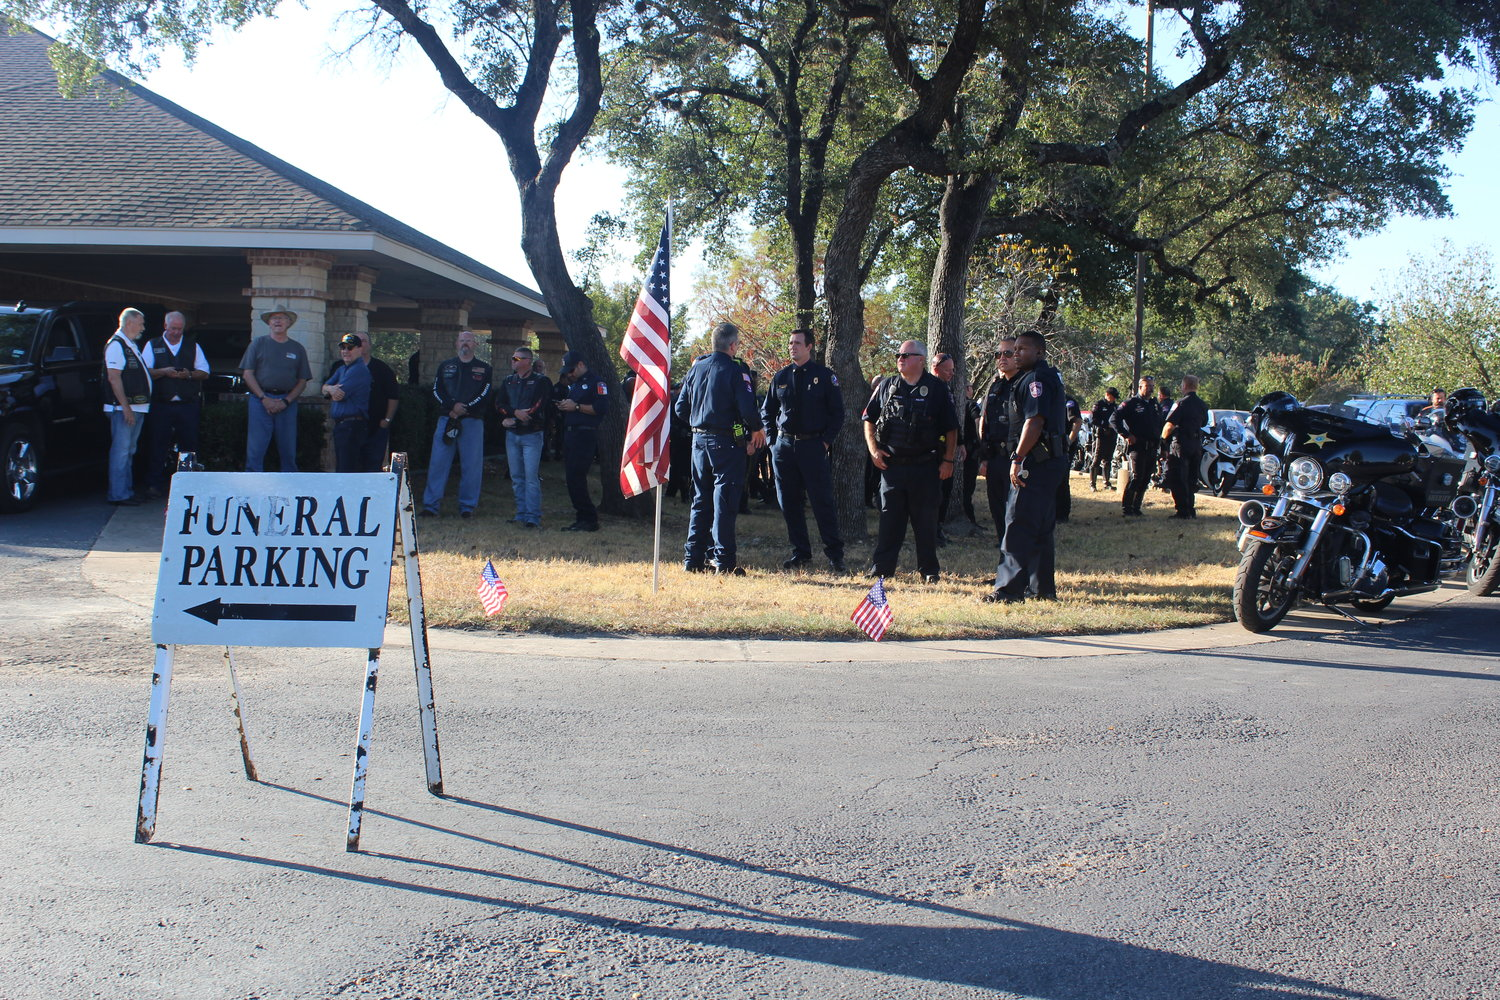 More than 400 Williamson County residents turned out Thursday morning for the funeral service for Leander veteran Mark Lyle Walker, 58, who passed away Aug. 25. The community was invited to the service by the county because he died without any known family members.